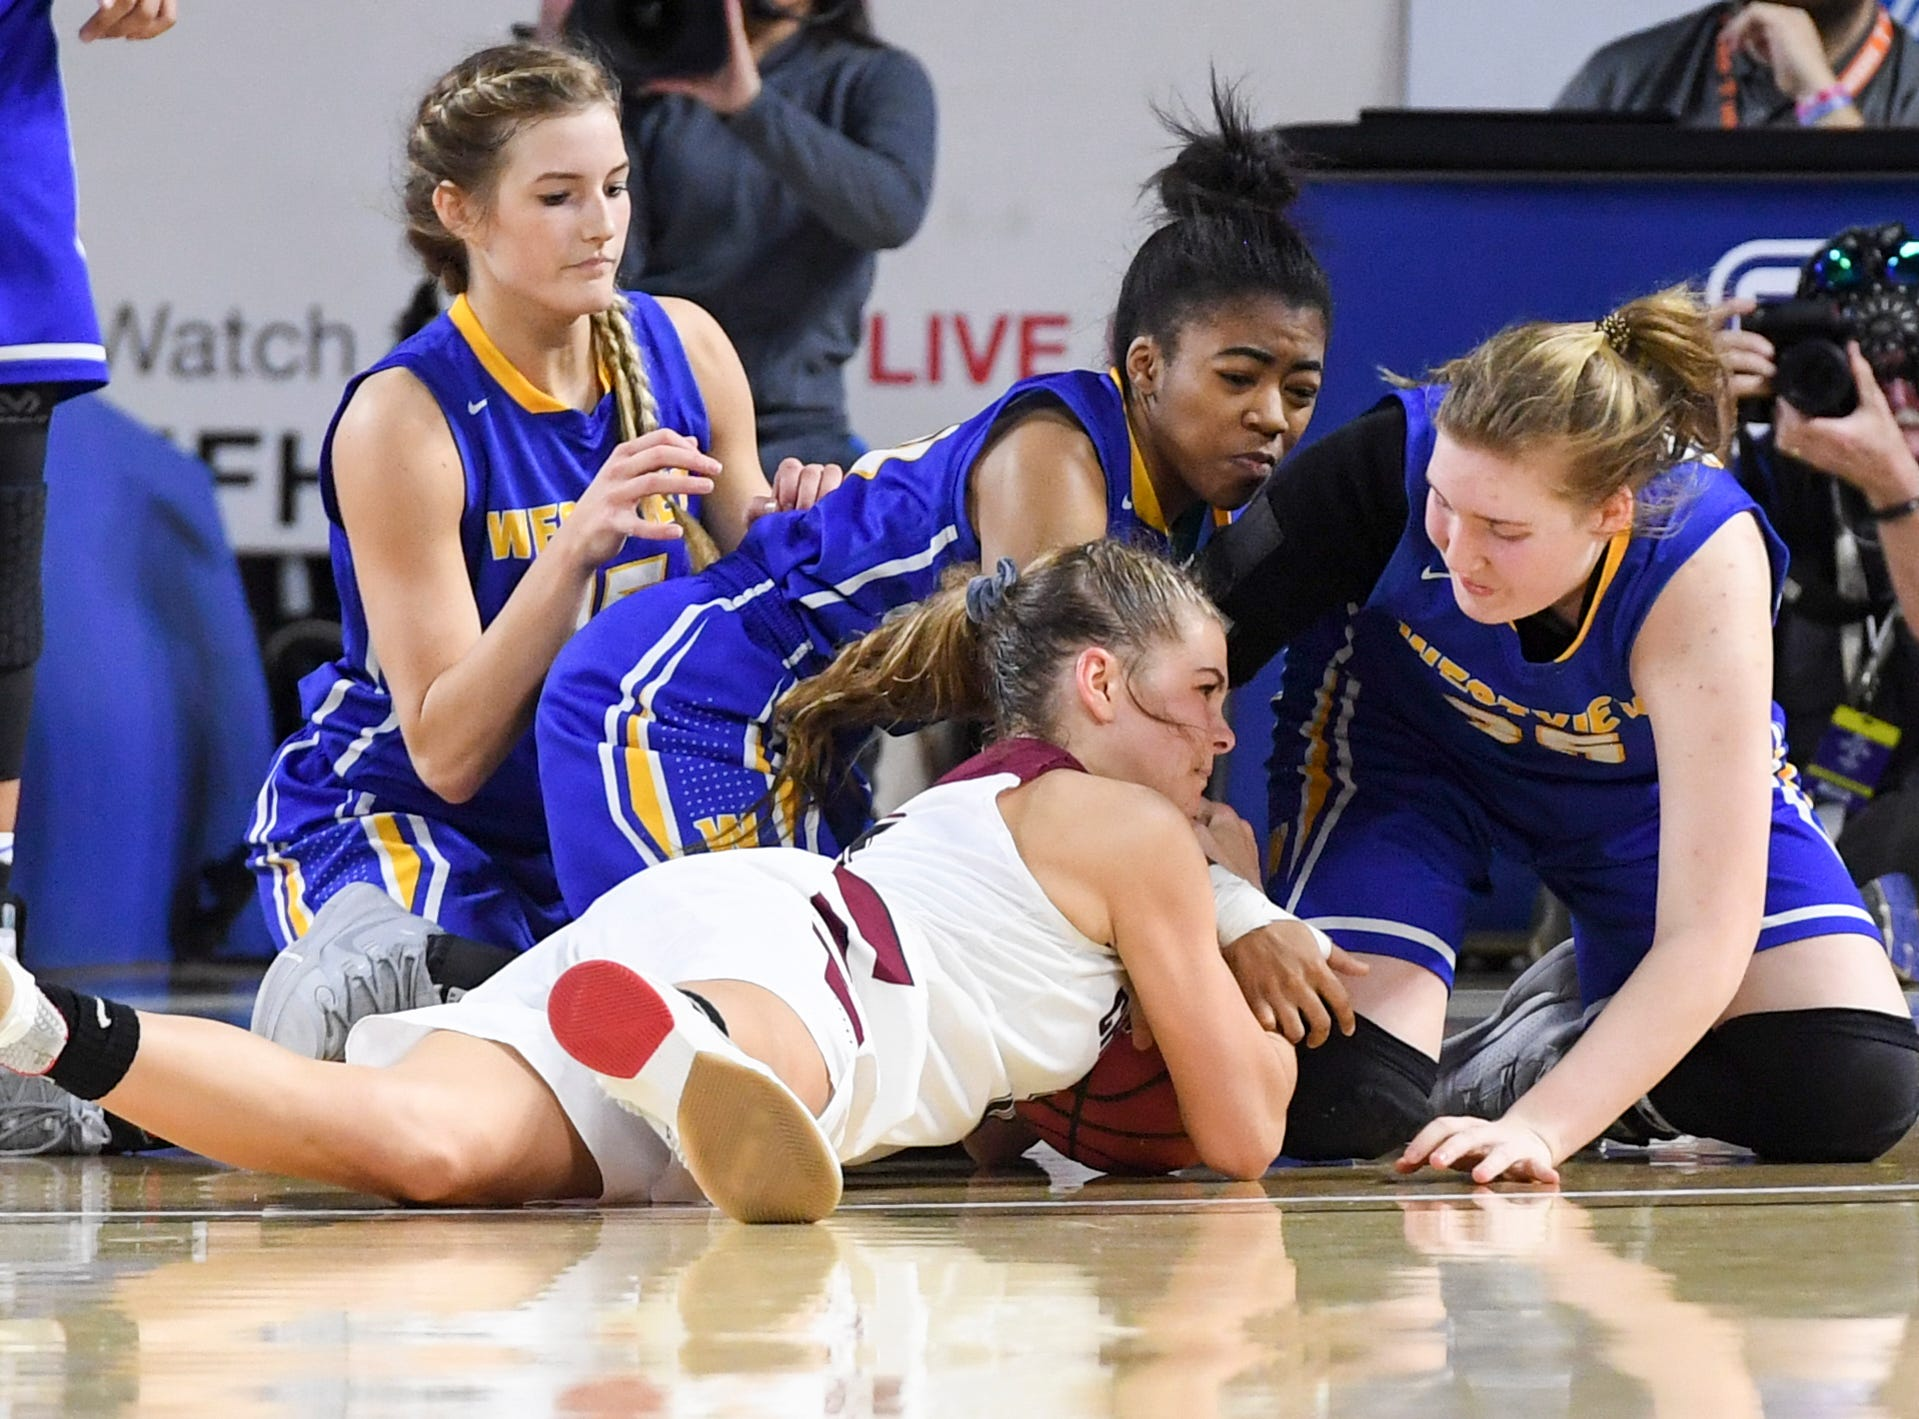 Westview's Alex Callins (15) Westview's Zanasha Gadlen (10) and Westview's Avery Leyhue (35) battle for possession of a loose ball during their Class AA championship game, Saturday, March 9, 2019, in Murfreesboro. Westview fell to Cheatham County, 43-40.